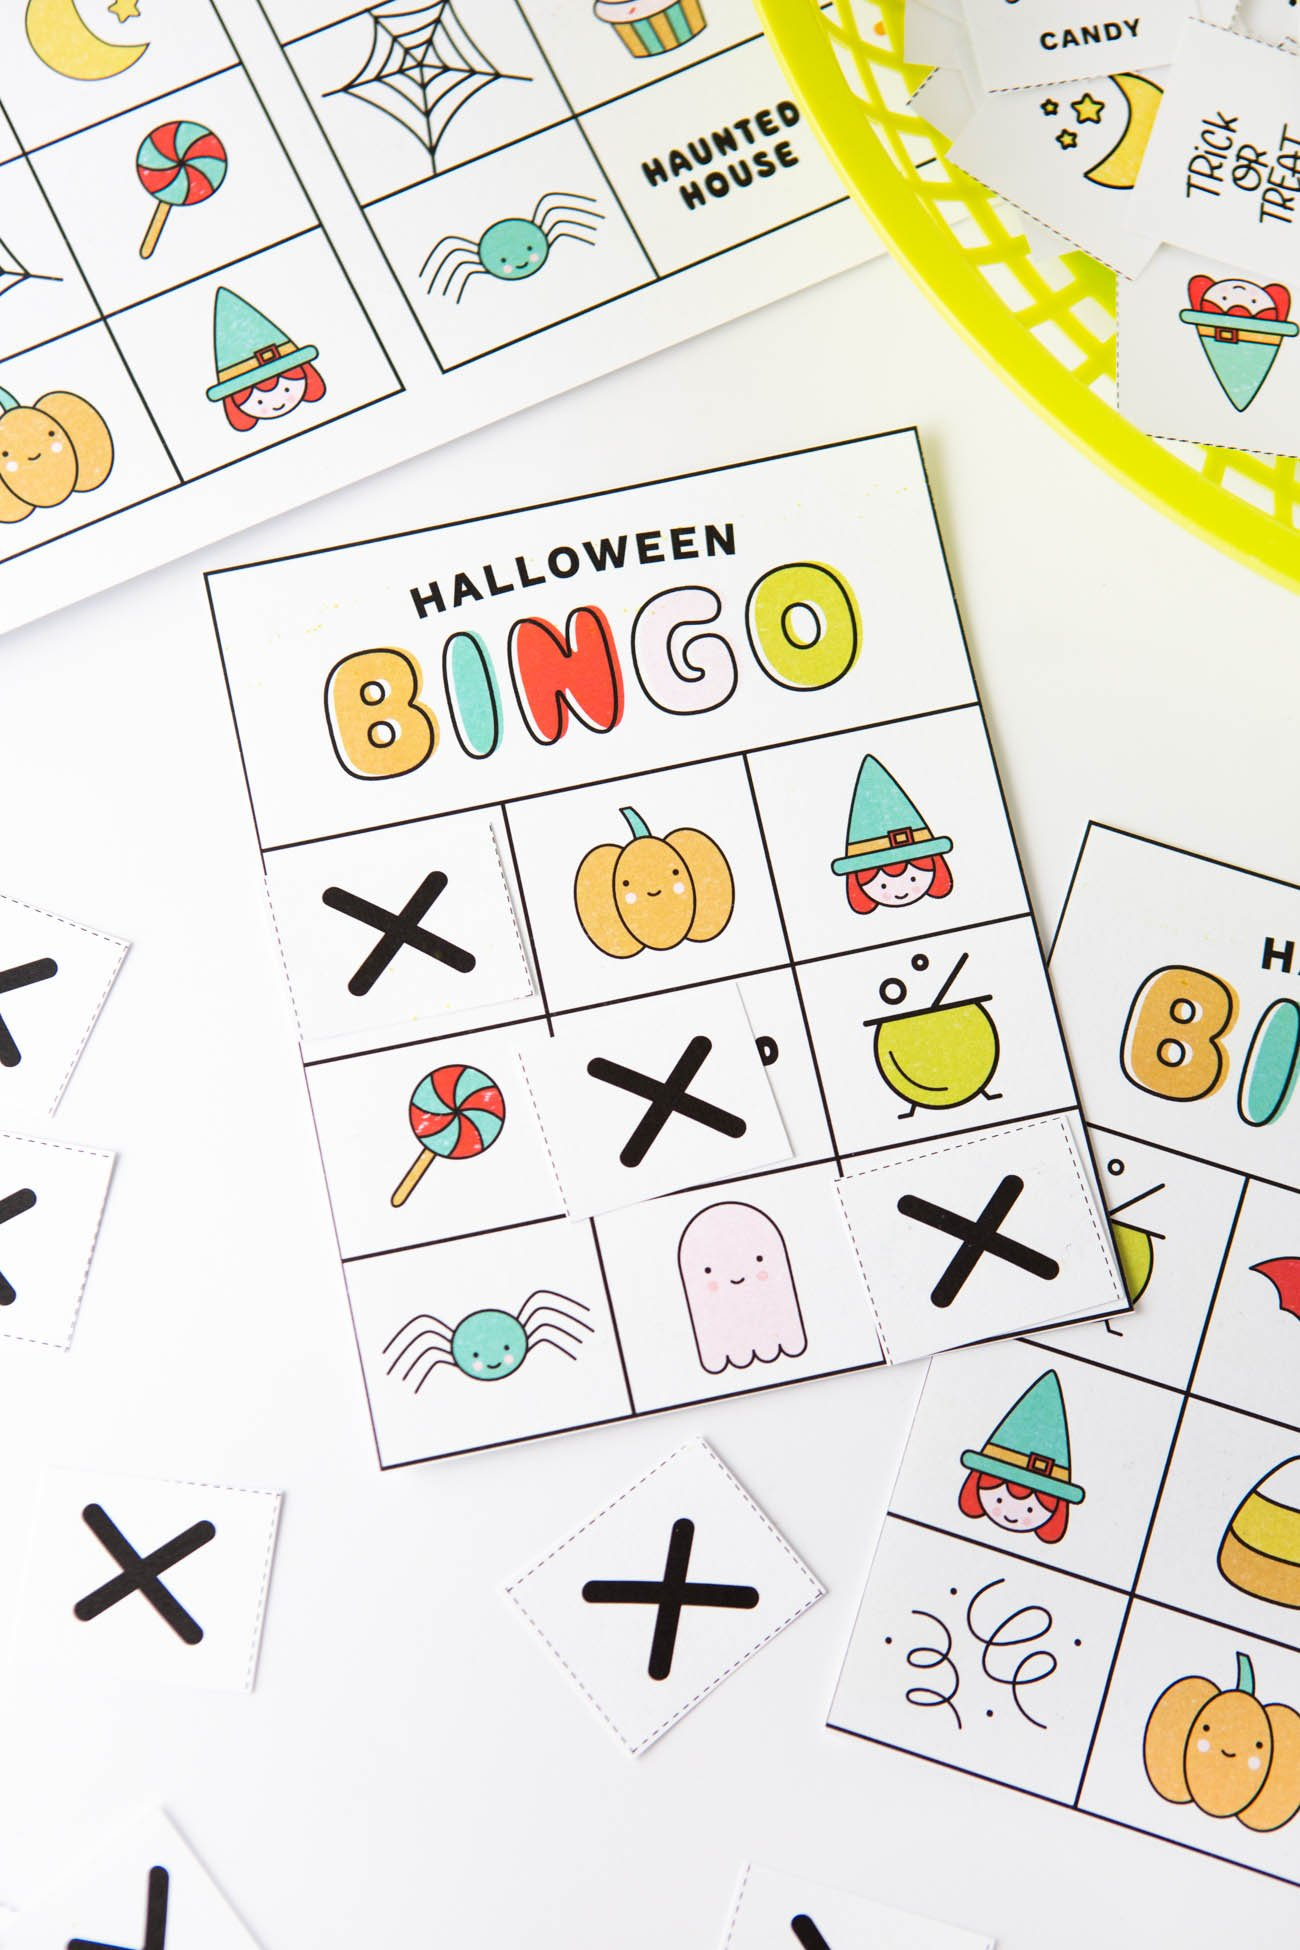 image relating to Printable Bingo Chips referred to as Totally free Printable Halloween Bingo Playing cards - Style Consume Repeat